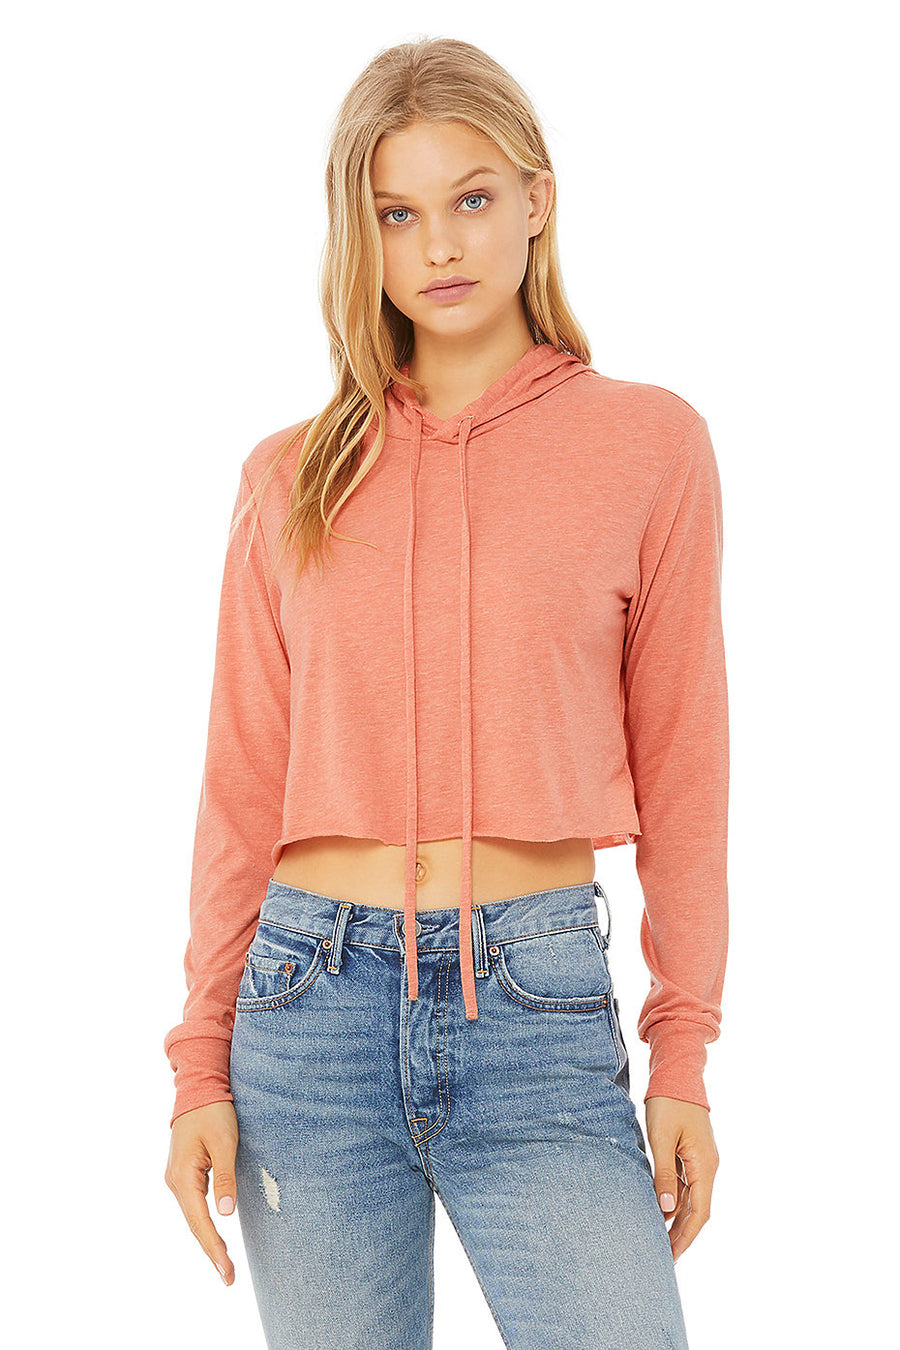 Women's Ultra Soft Cropped Lightweight Hoodie